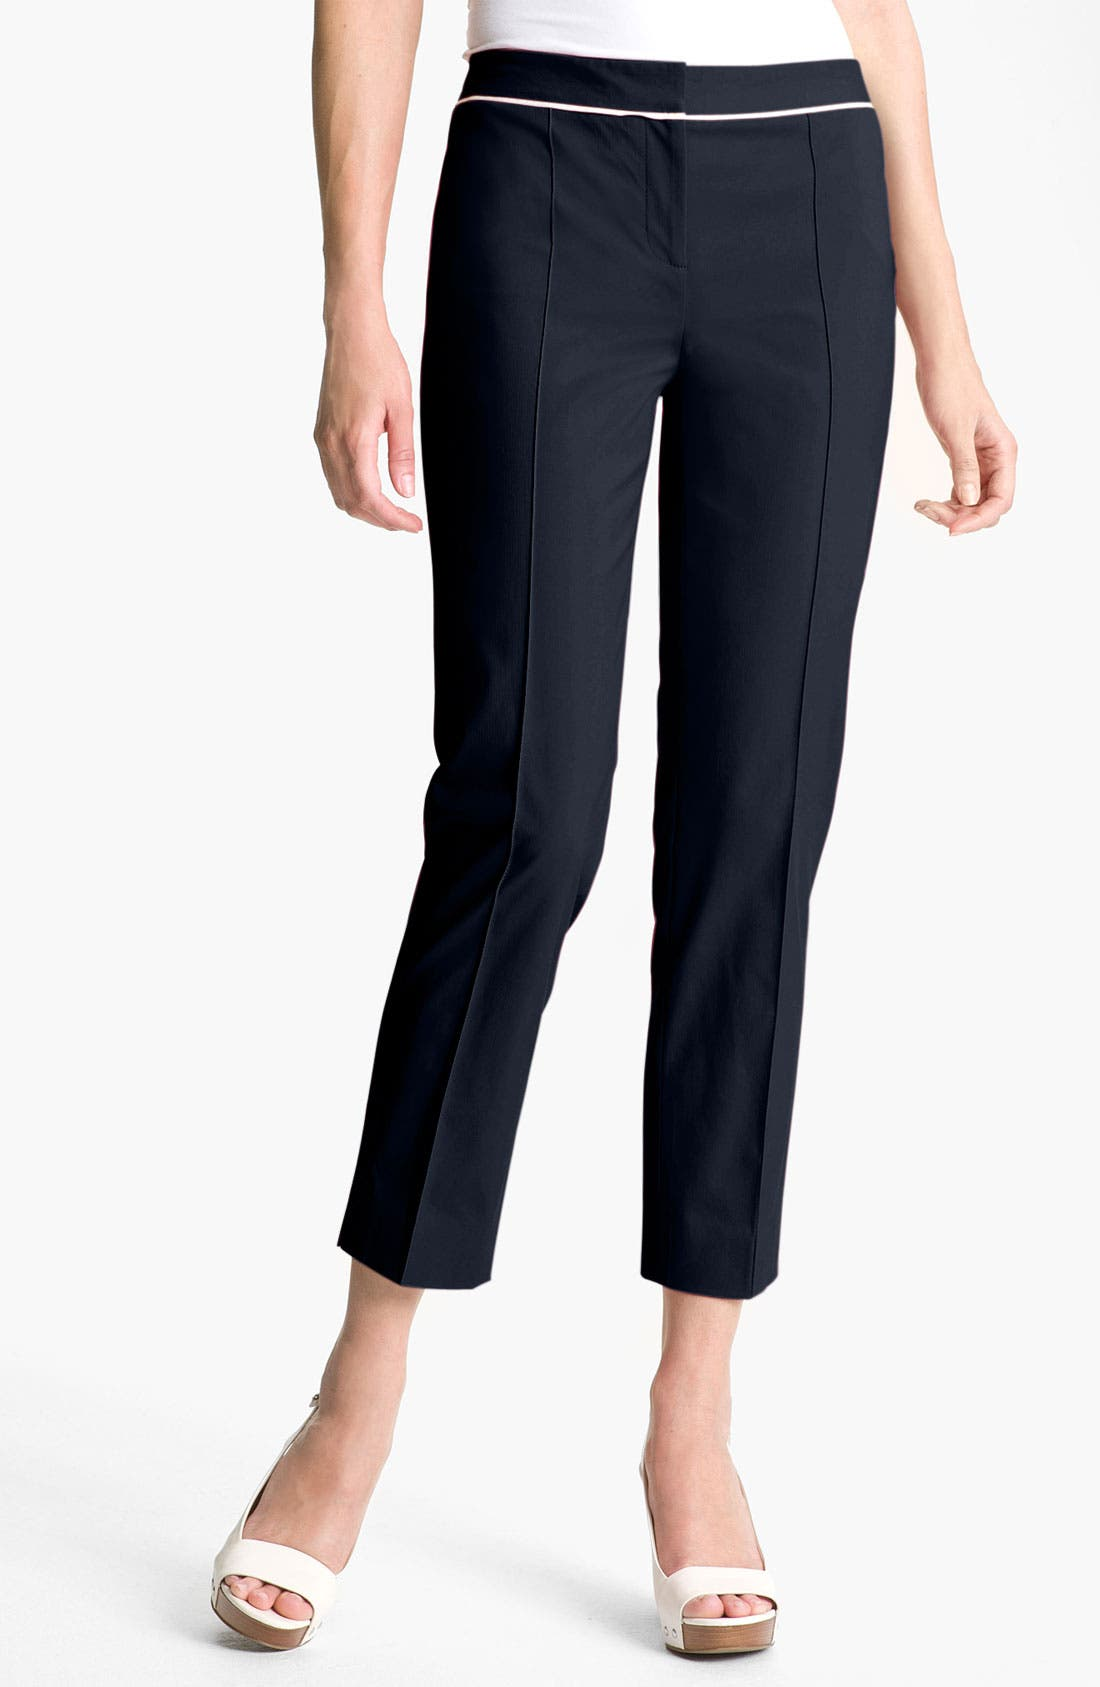 Alternate Image 1 Selected - Classiques Entier® 'Carta Weave' Slim Ankle Pants